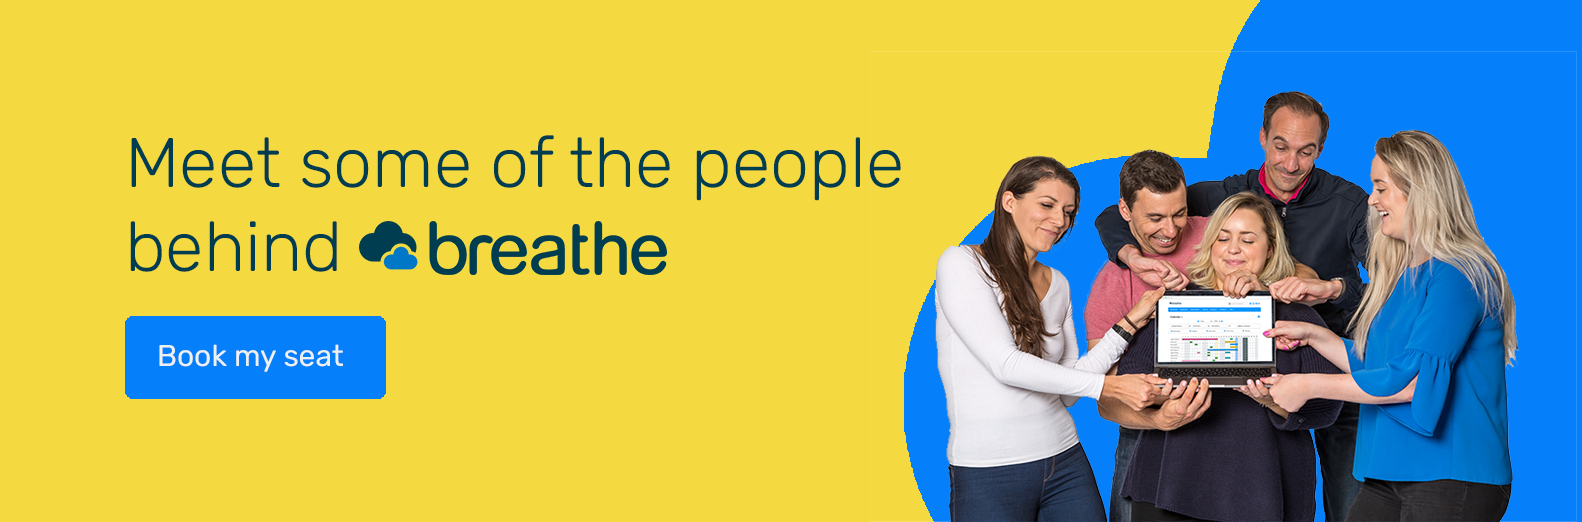 Meet some of the people behind Breathe1